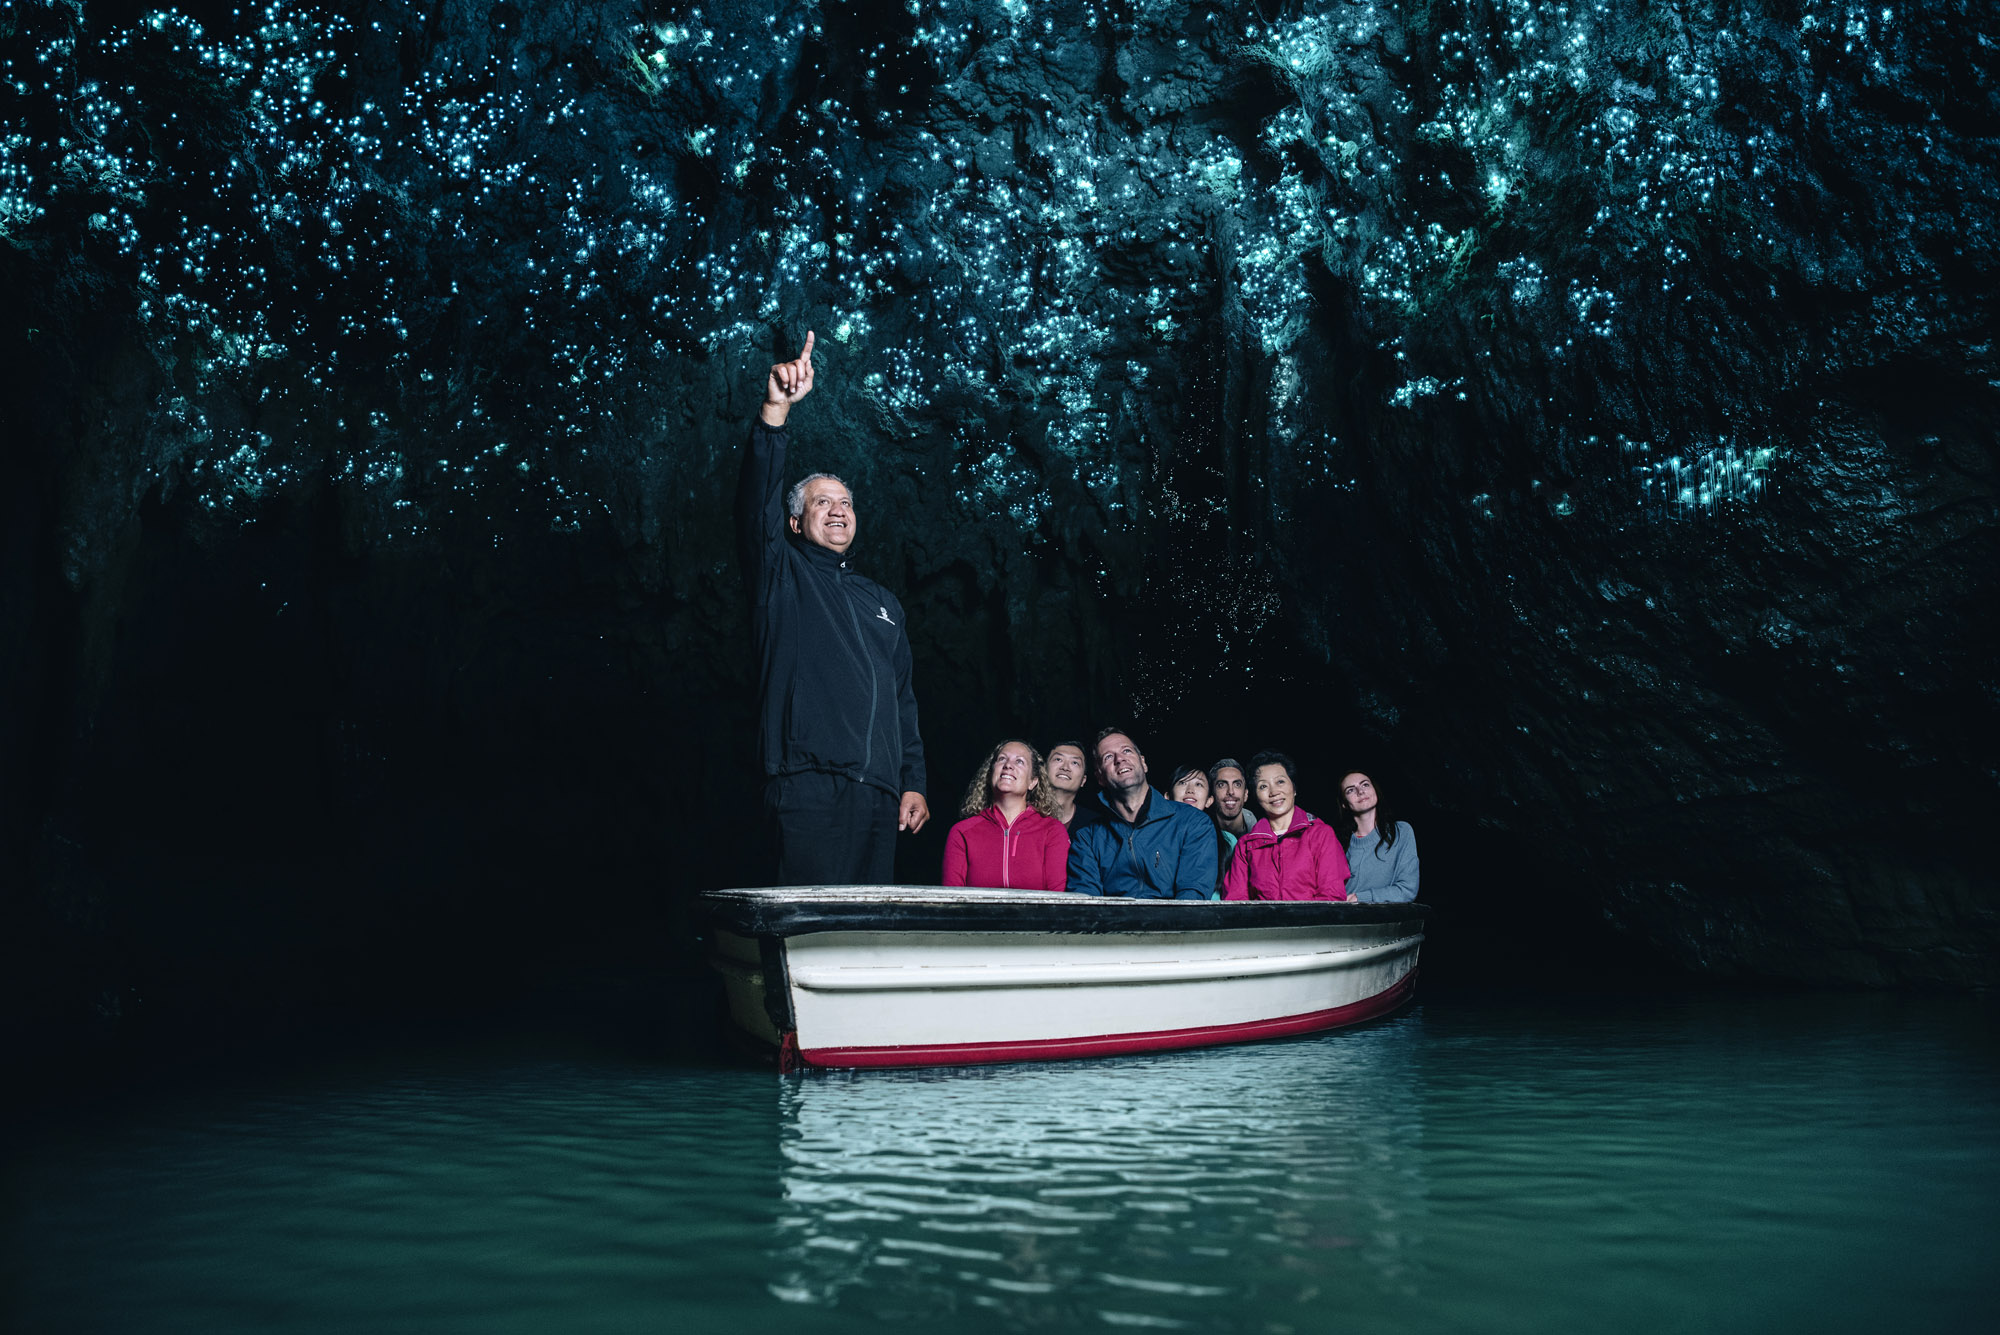 Waitomo Glowworm Caves & Tours NZ | Discover Waitomo